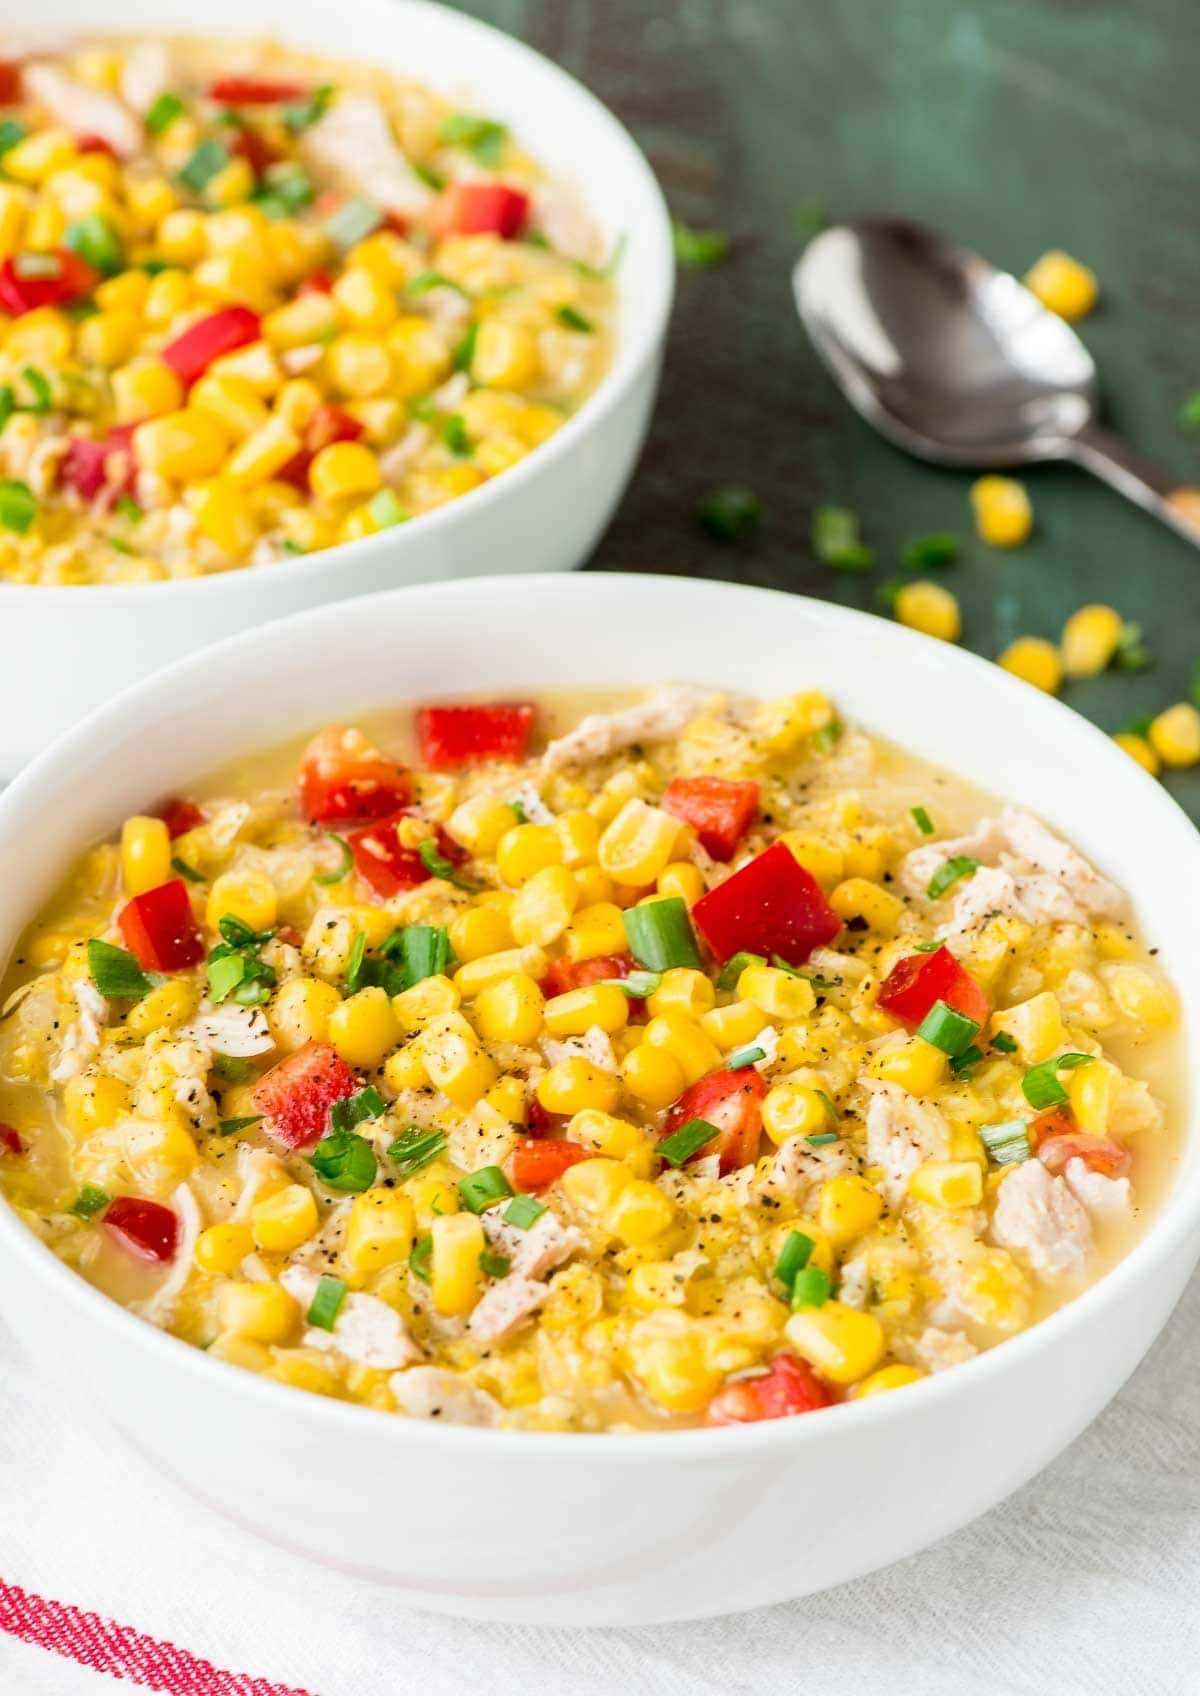 Lightened Up Creamy Crockpot Chicken and Corn Chowder — Delicious, filling, and EASY. Our whole family loved it! Perfect weeknight slow cooker recipe. @wellplated